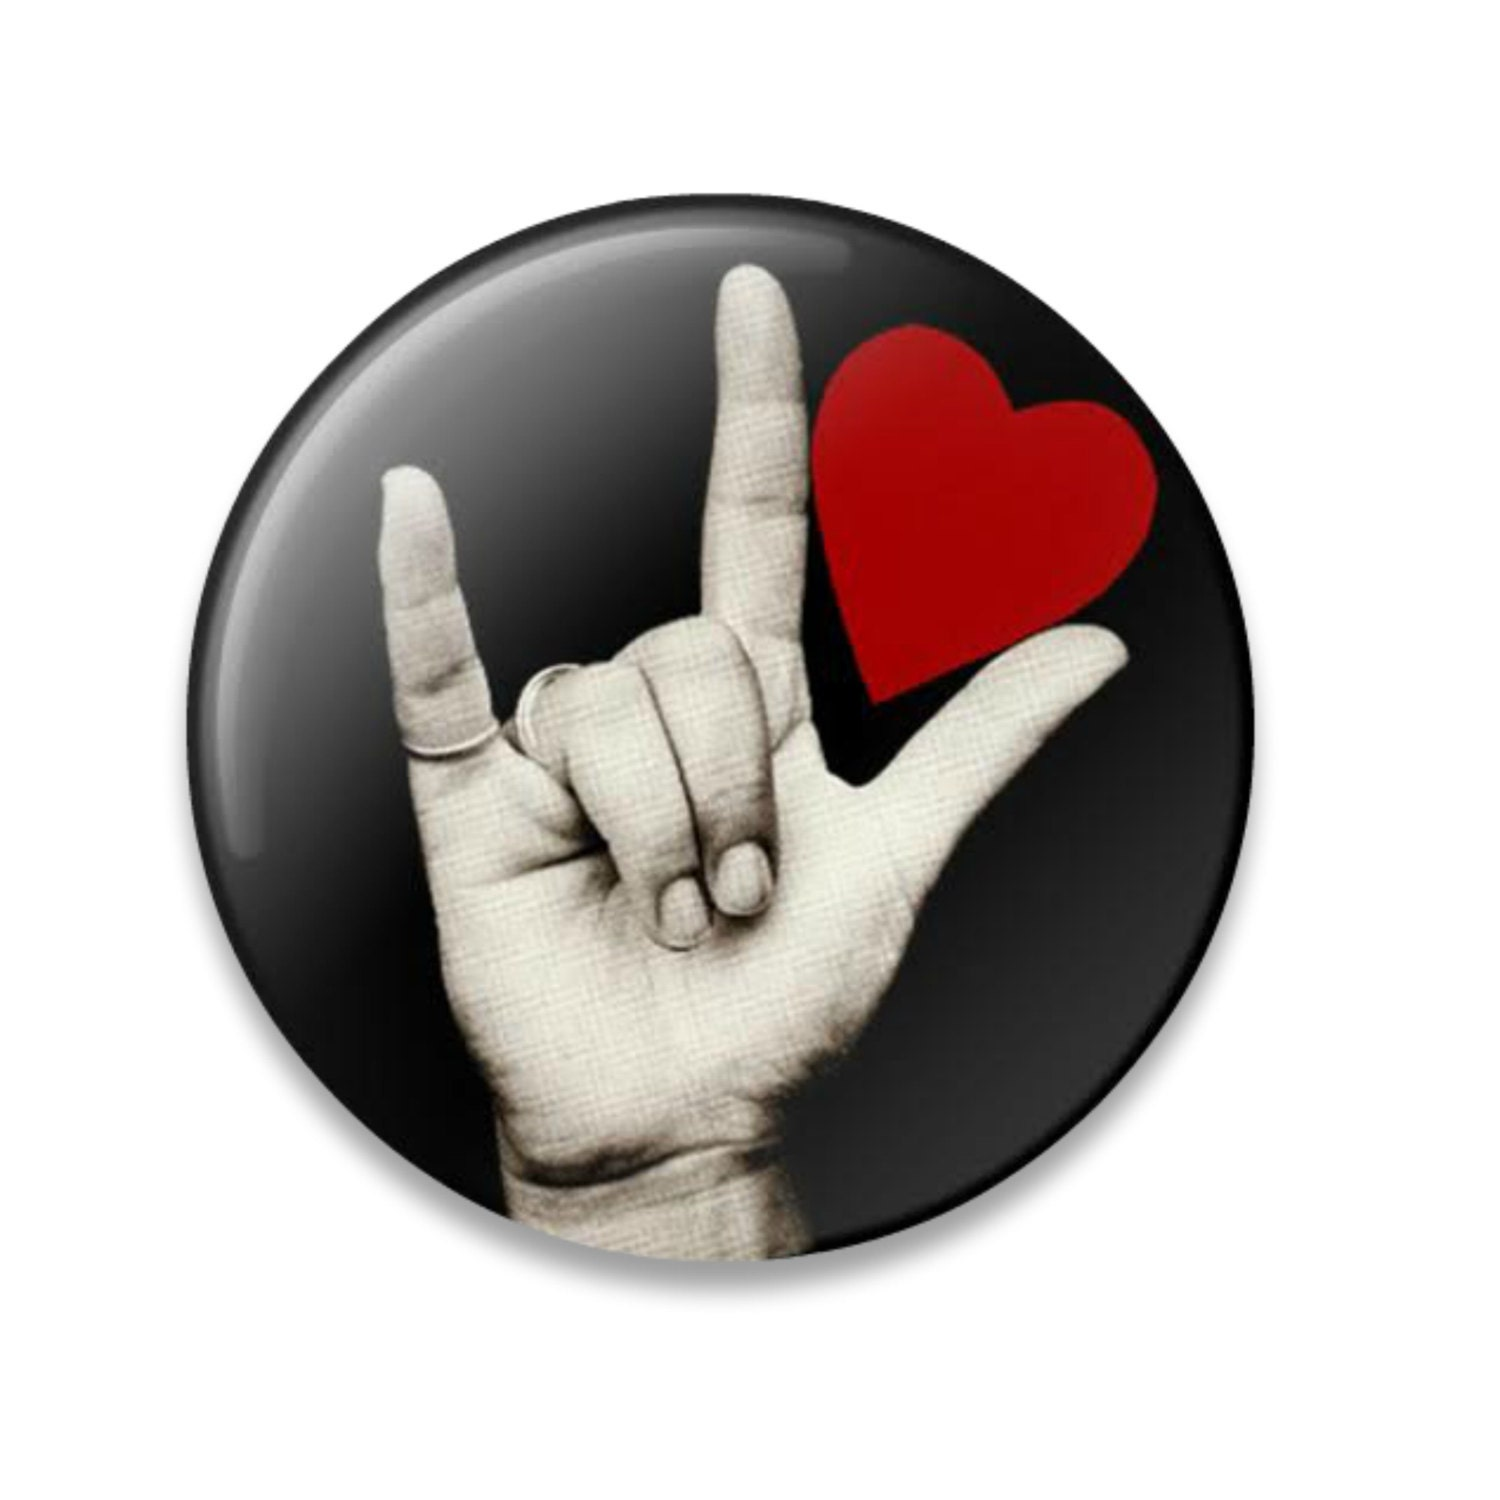 I love you american sign language asl pin back button i love you american sign language asl pin back button celebrate deaf pride liza cowan design biocorpaavc Image collections